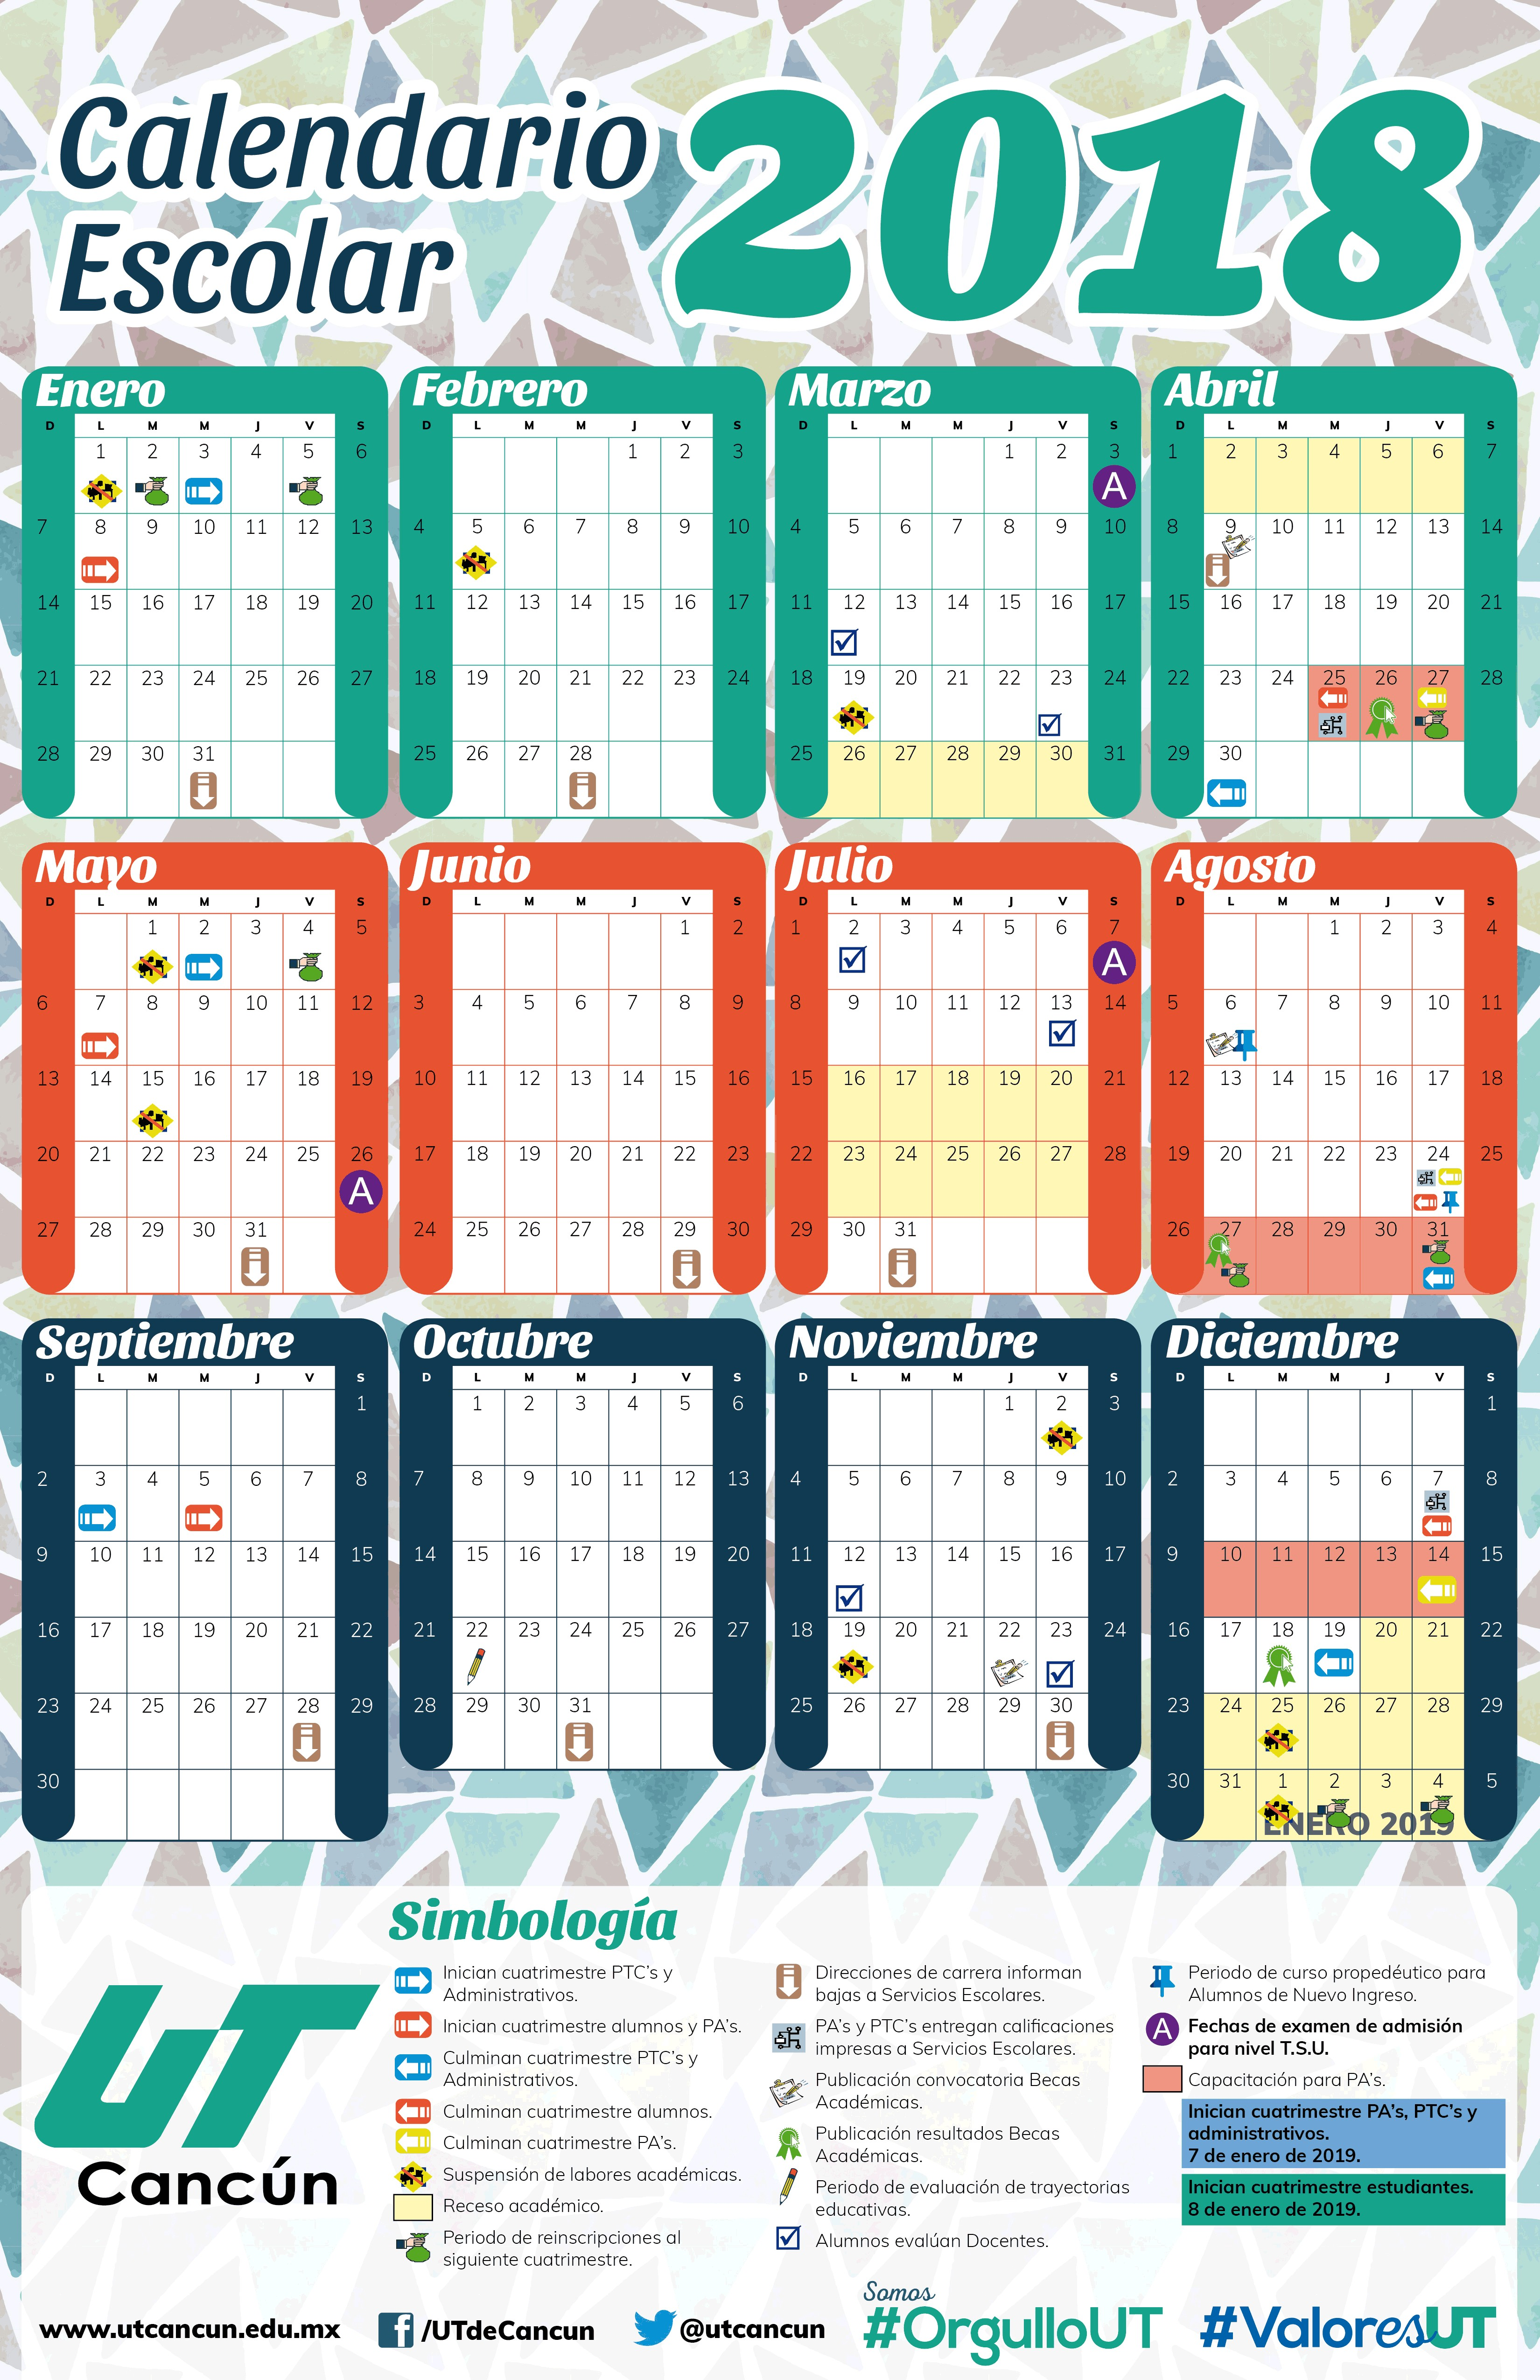 Calendario Escolar 2019 Imprimir Más Reciente Ut Cancºn Of Calendario Escolar 2019 Imprimir Más Reciente Calendario Para Imprimir 2018 2019